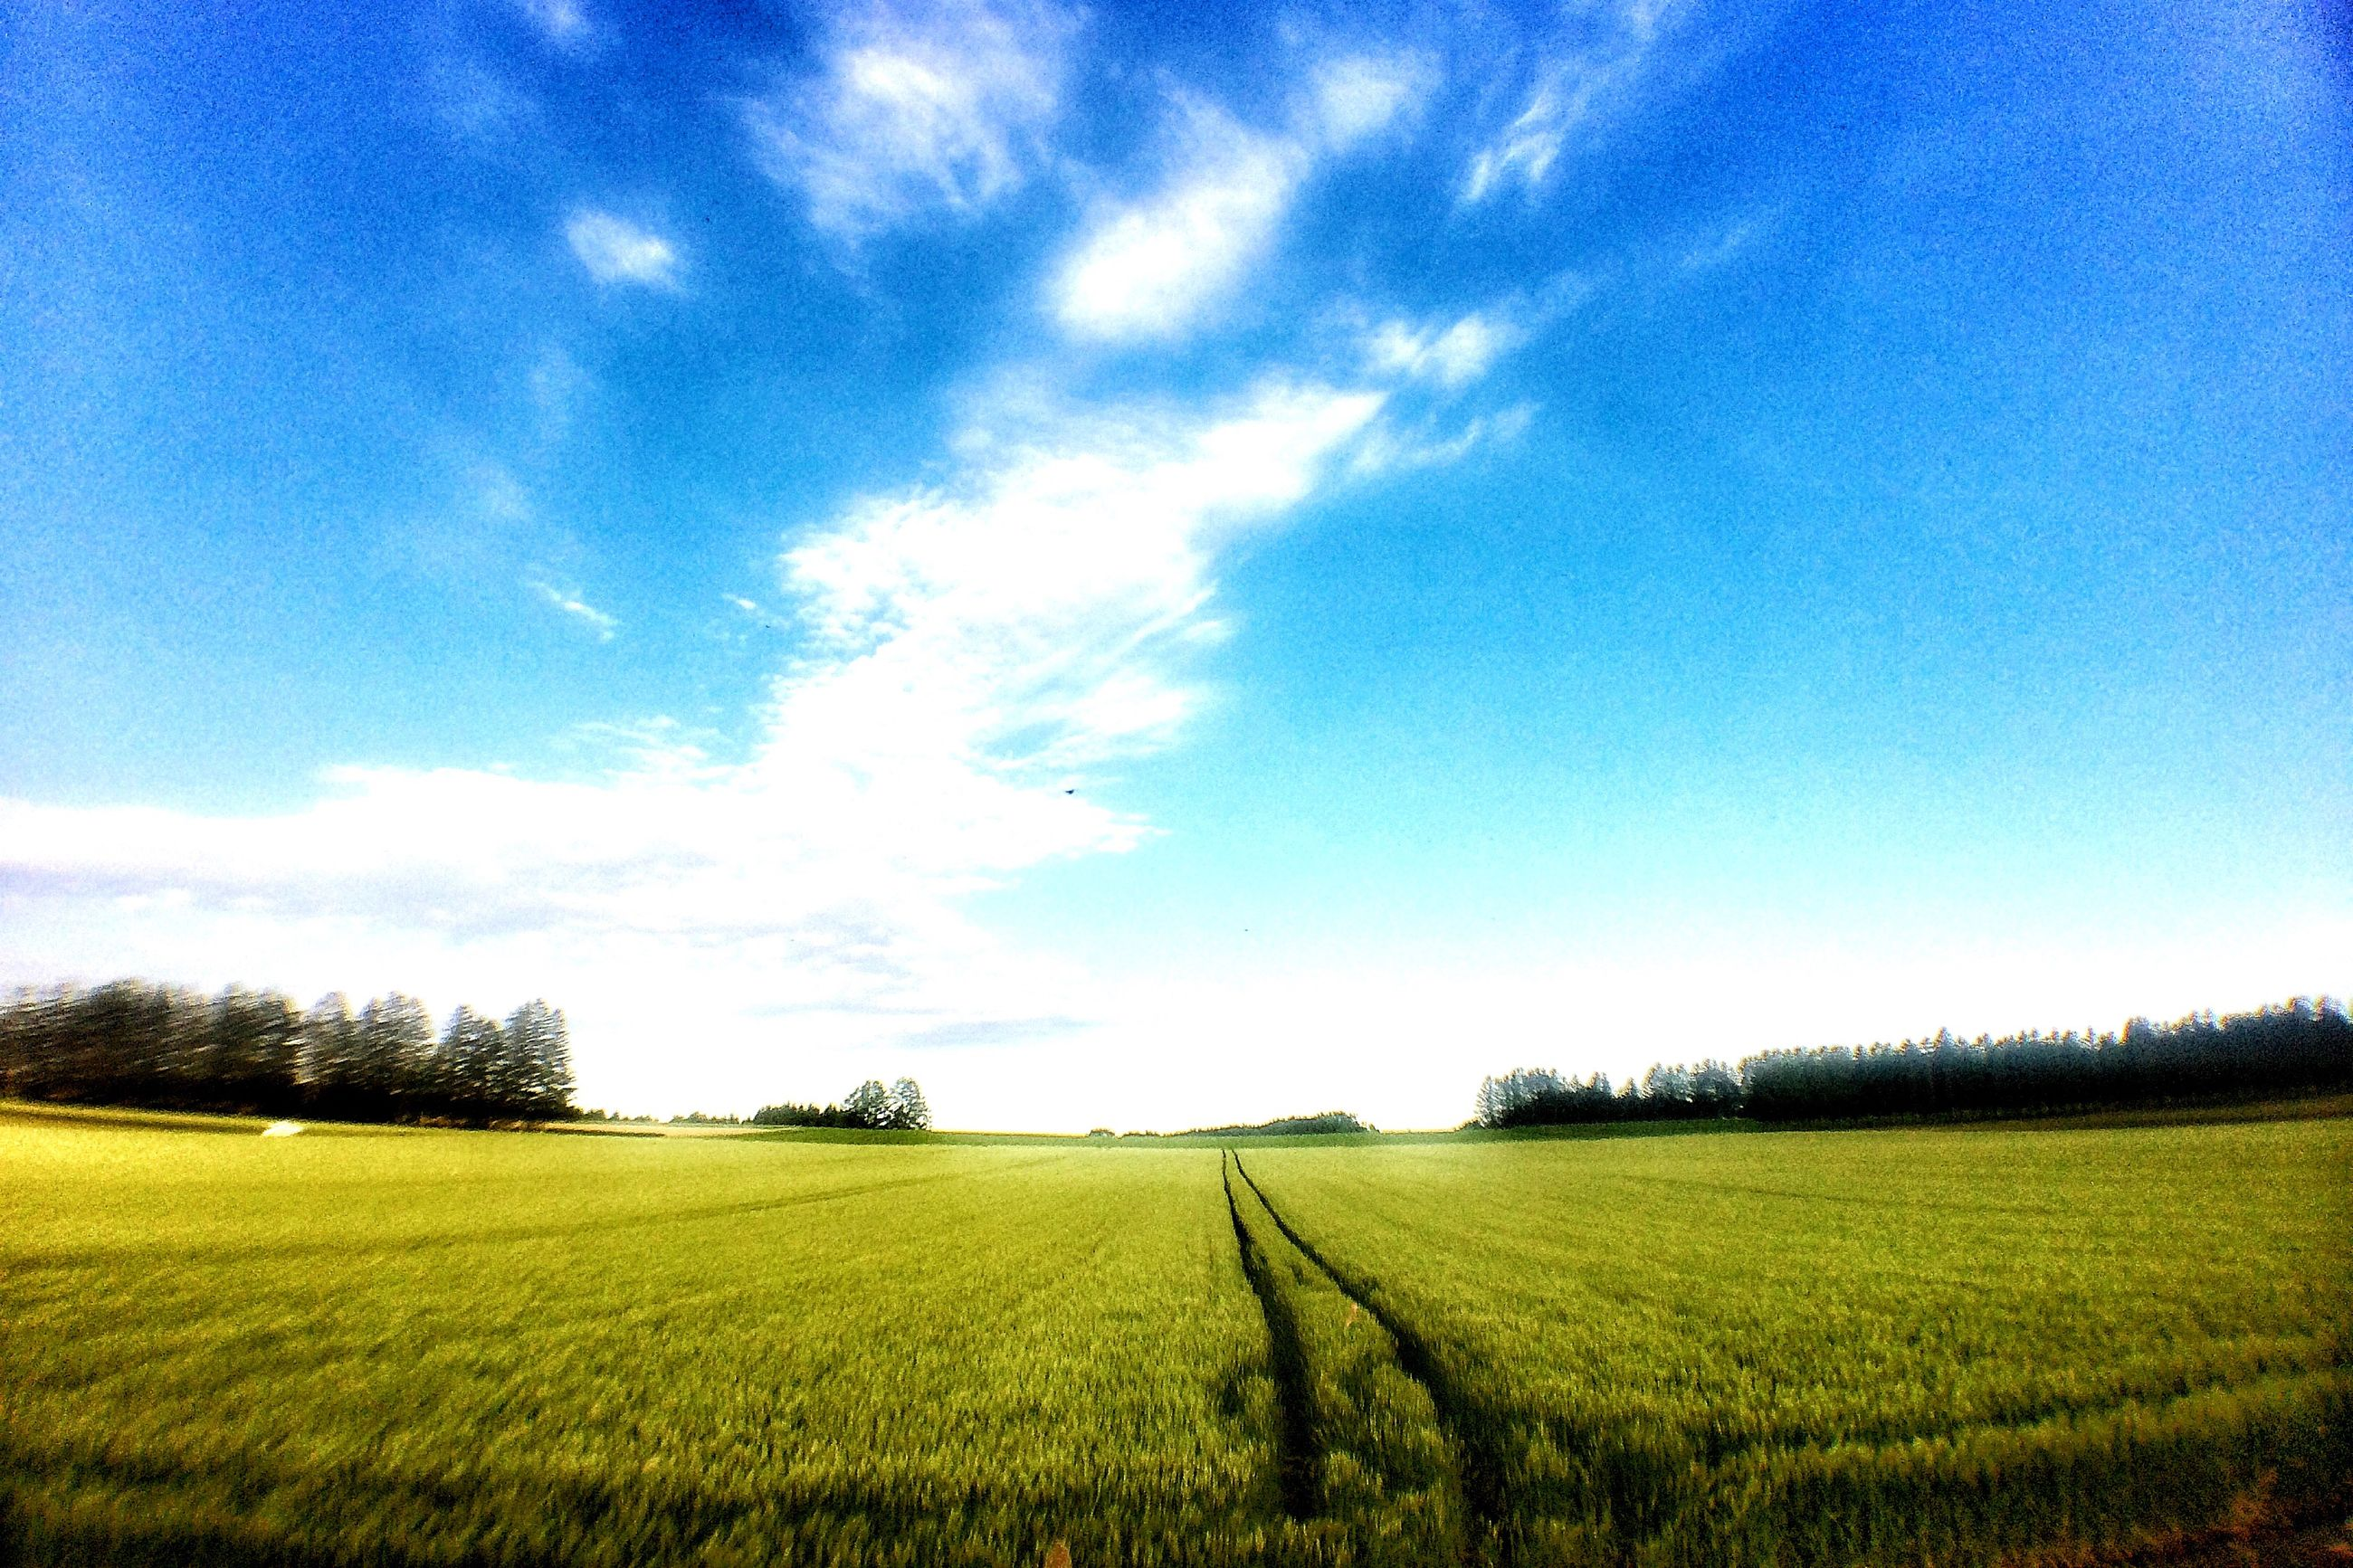 field, agriculture, rural scene, landscape, tranquil scene, tranquility, beauty in nature, growth, sky, scenics, farm, nature, crop, blue, yellow, grass, cultivated land, tree, green color, idyllic